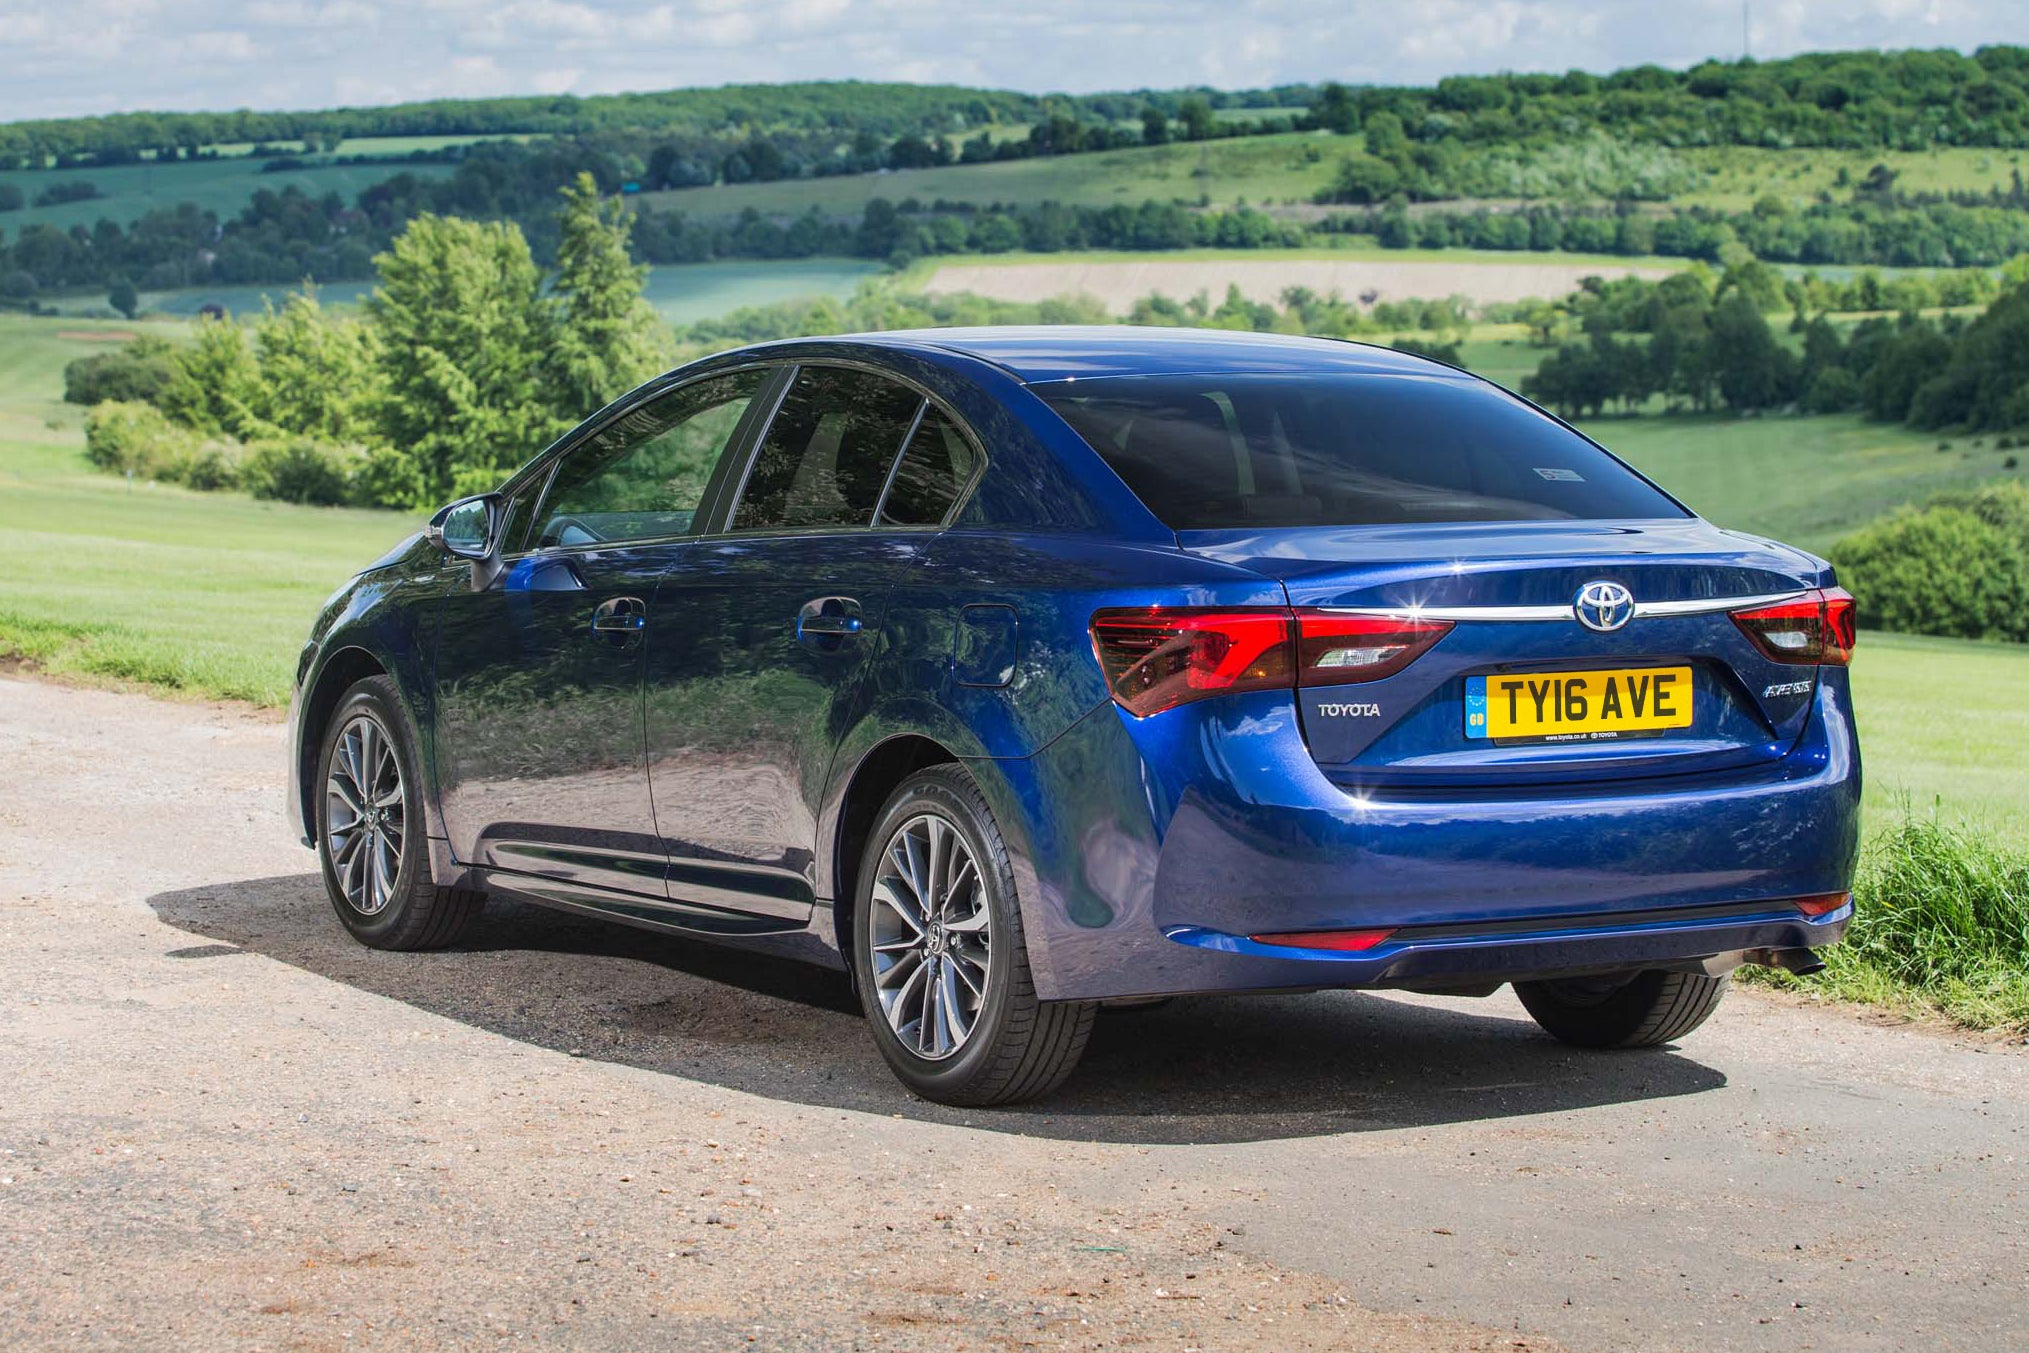 Toyota Avensis Rear Side View